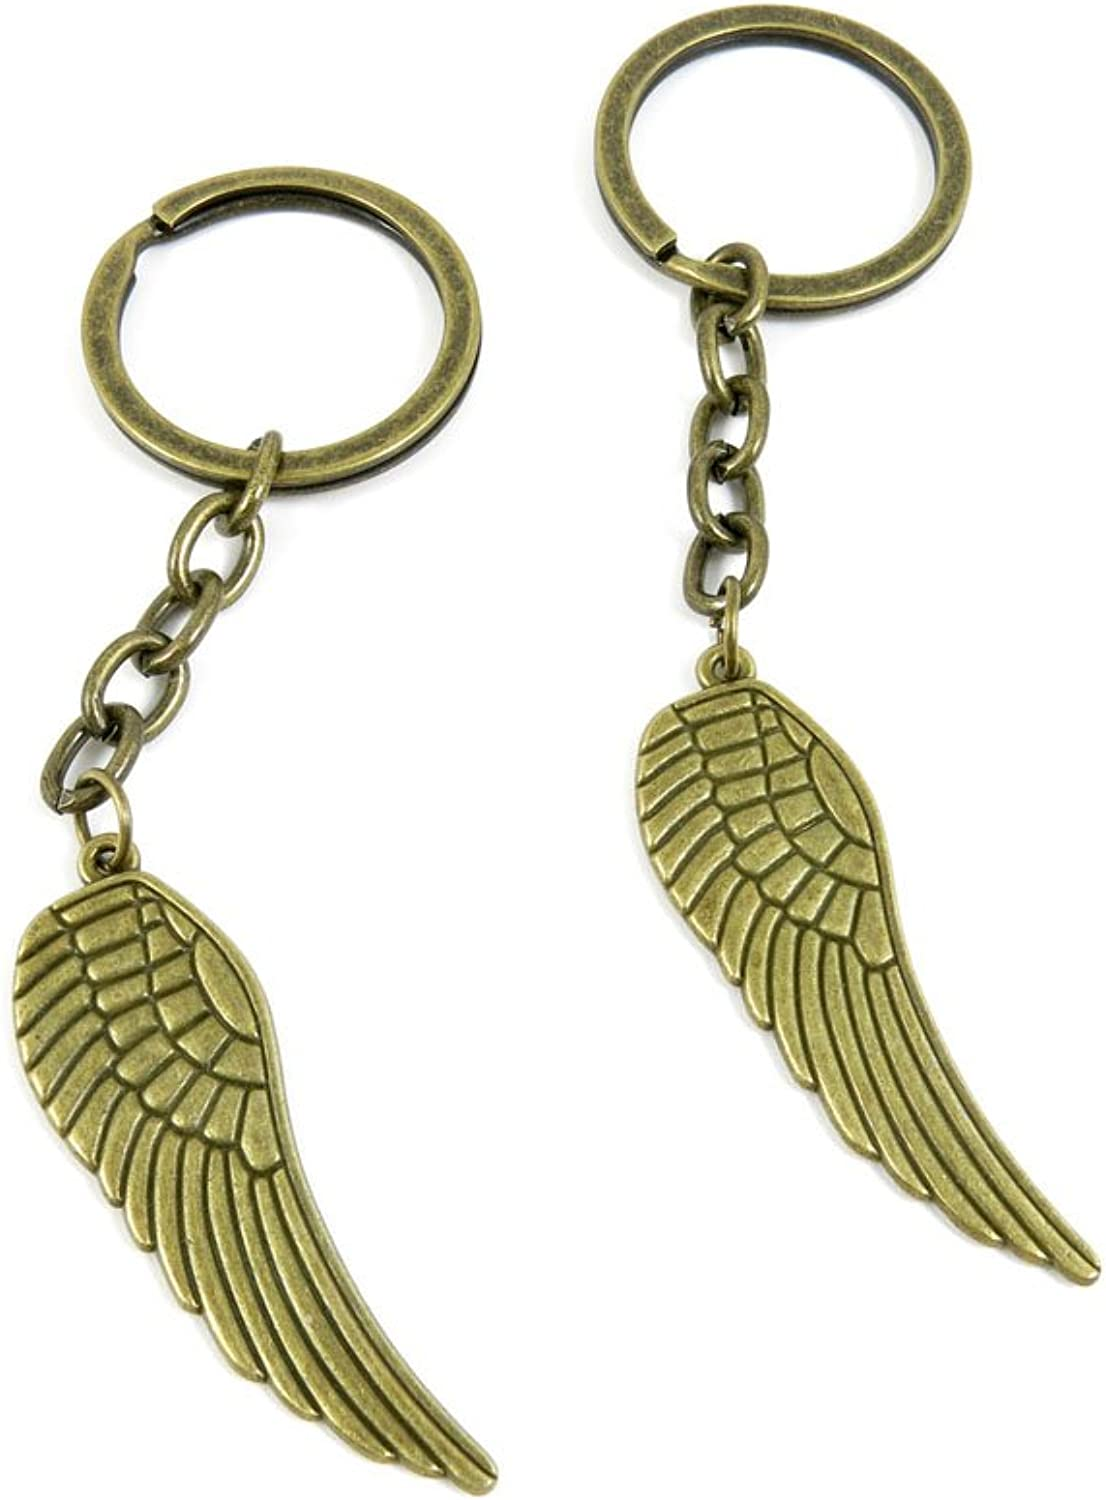 80 PCS Keyring Car Door Key Ring Tag Chain Keychain Wholesale Suppliers Charms Handmade L5PW3 Angel Wings